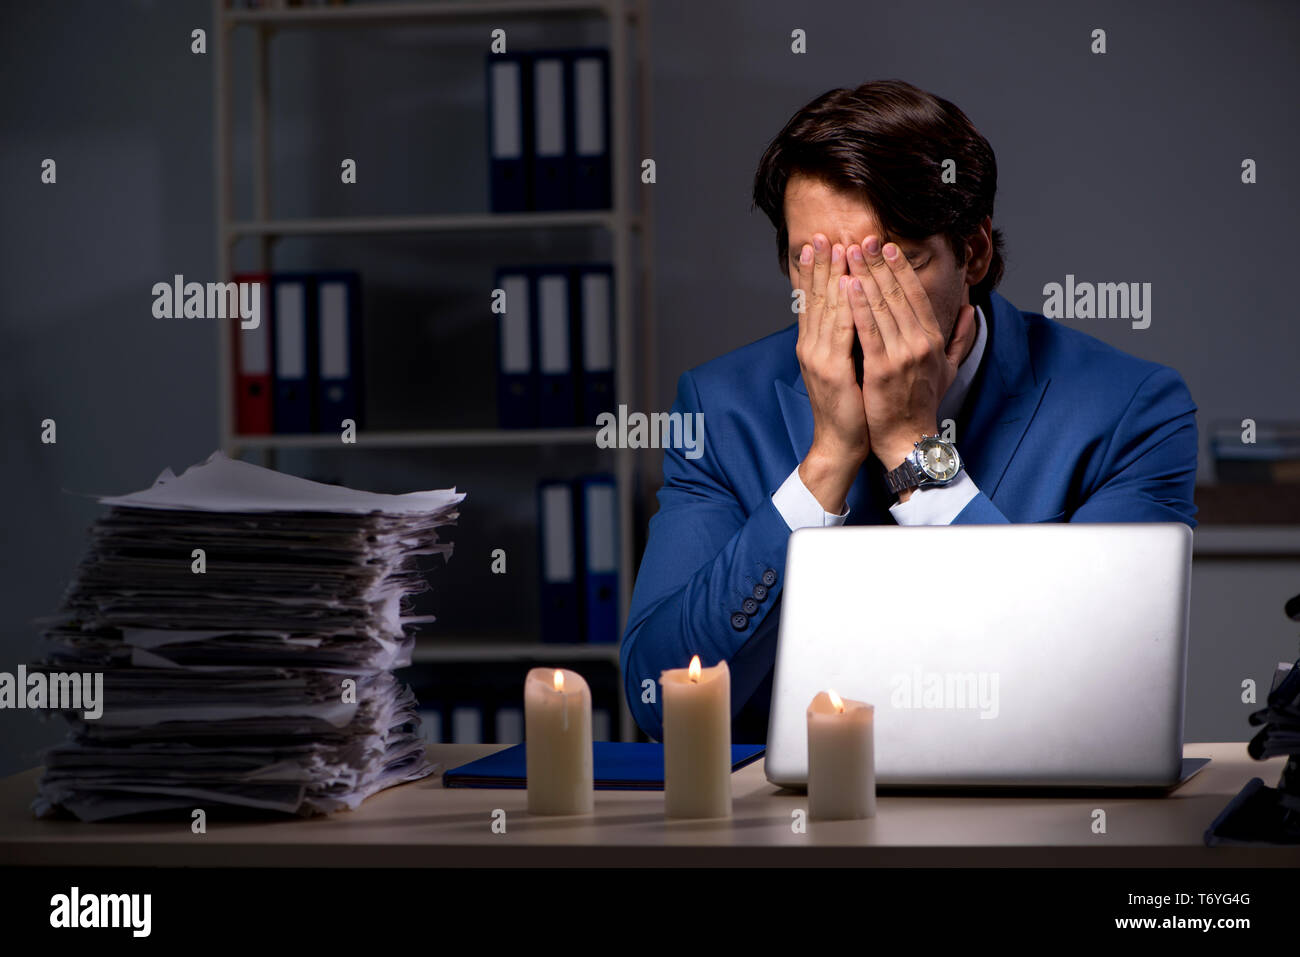 Businessman working late in office with candle light - Stock Image